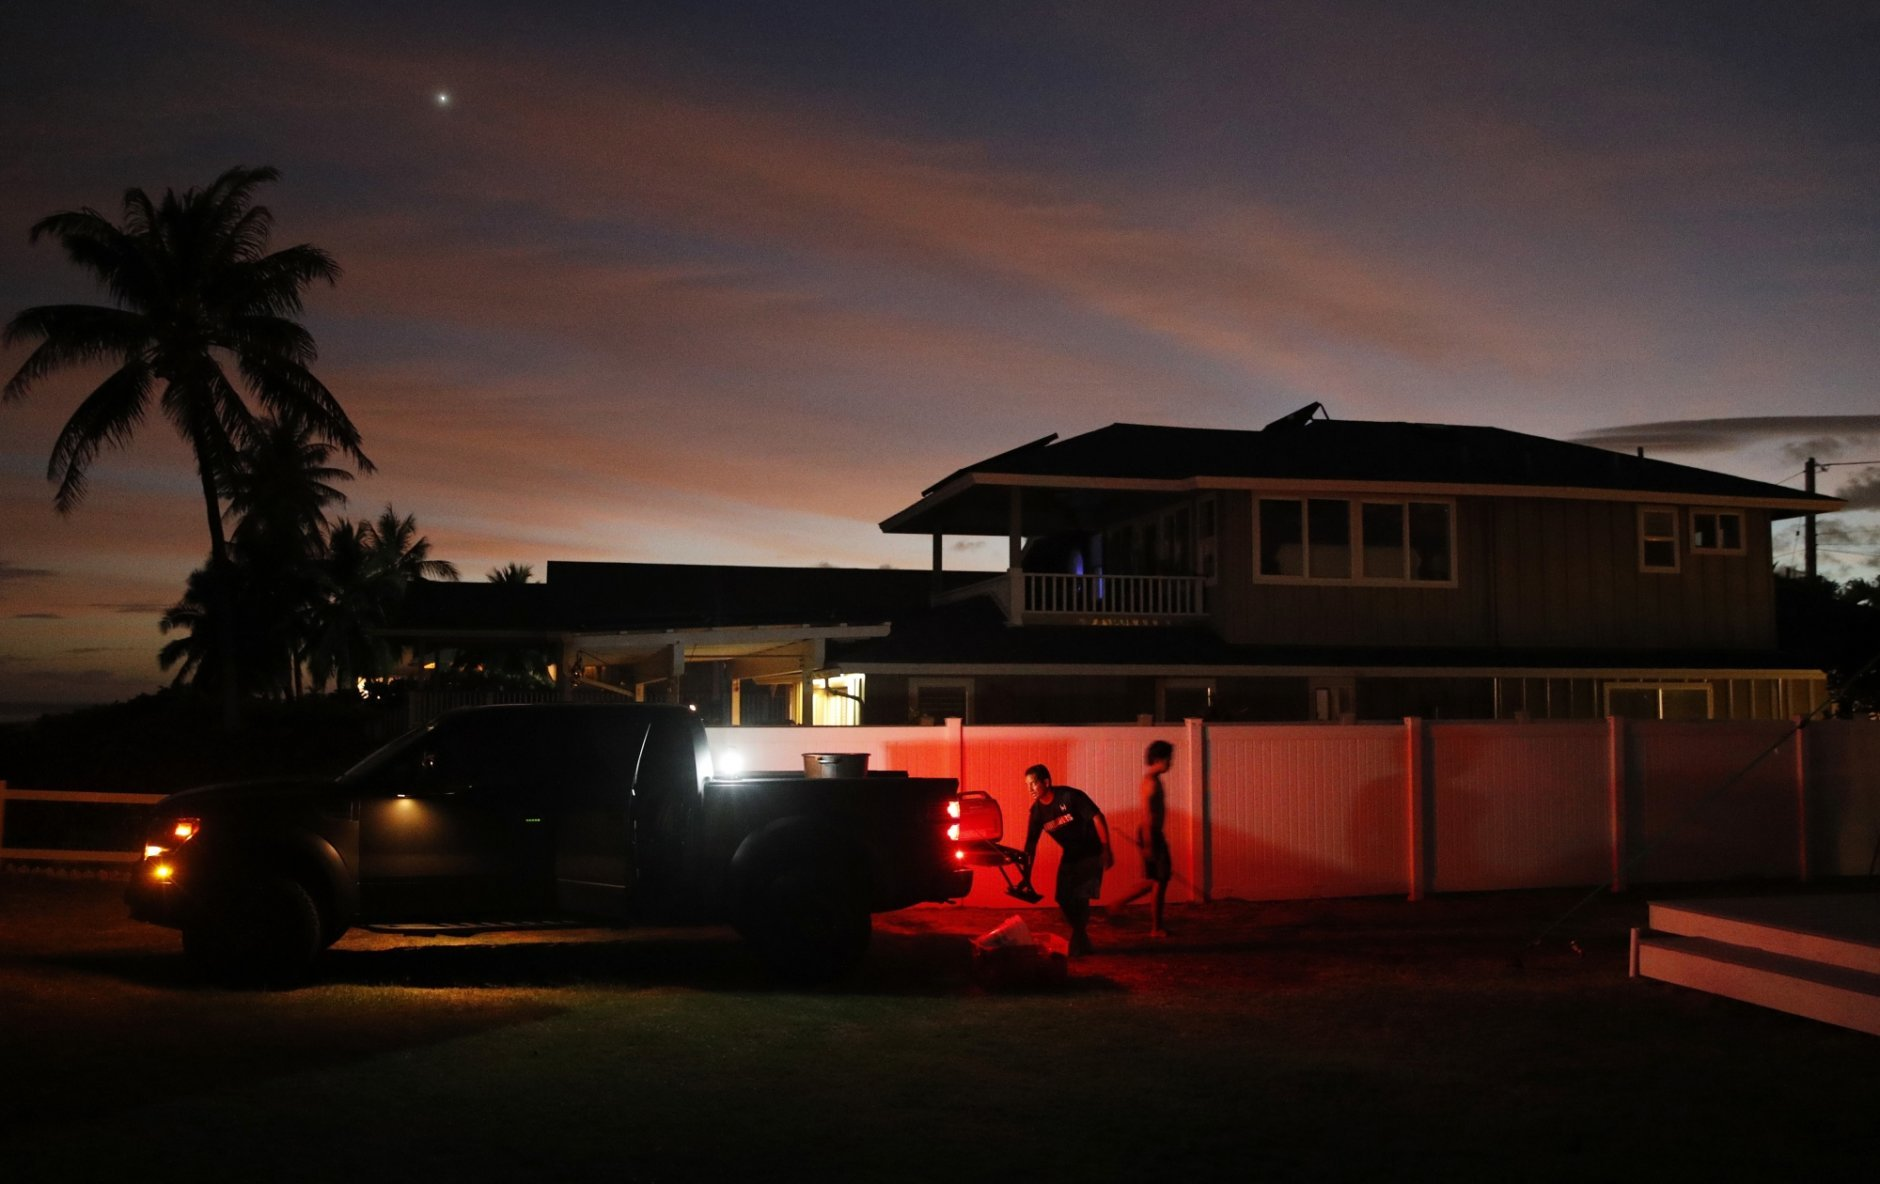 Jay Kitashima, left, loads up his truck after securing his tiny home in preparation for Hurricane Lane, Wednesday, Aug. 22, 2018, along Ewa Beach in Honolulu. As emergency shelters opened, rain began to pour and cellphone alerts went out, the approaching hurricane started to feel real for Hawaii residents. (AP Photo/John Locher)